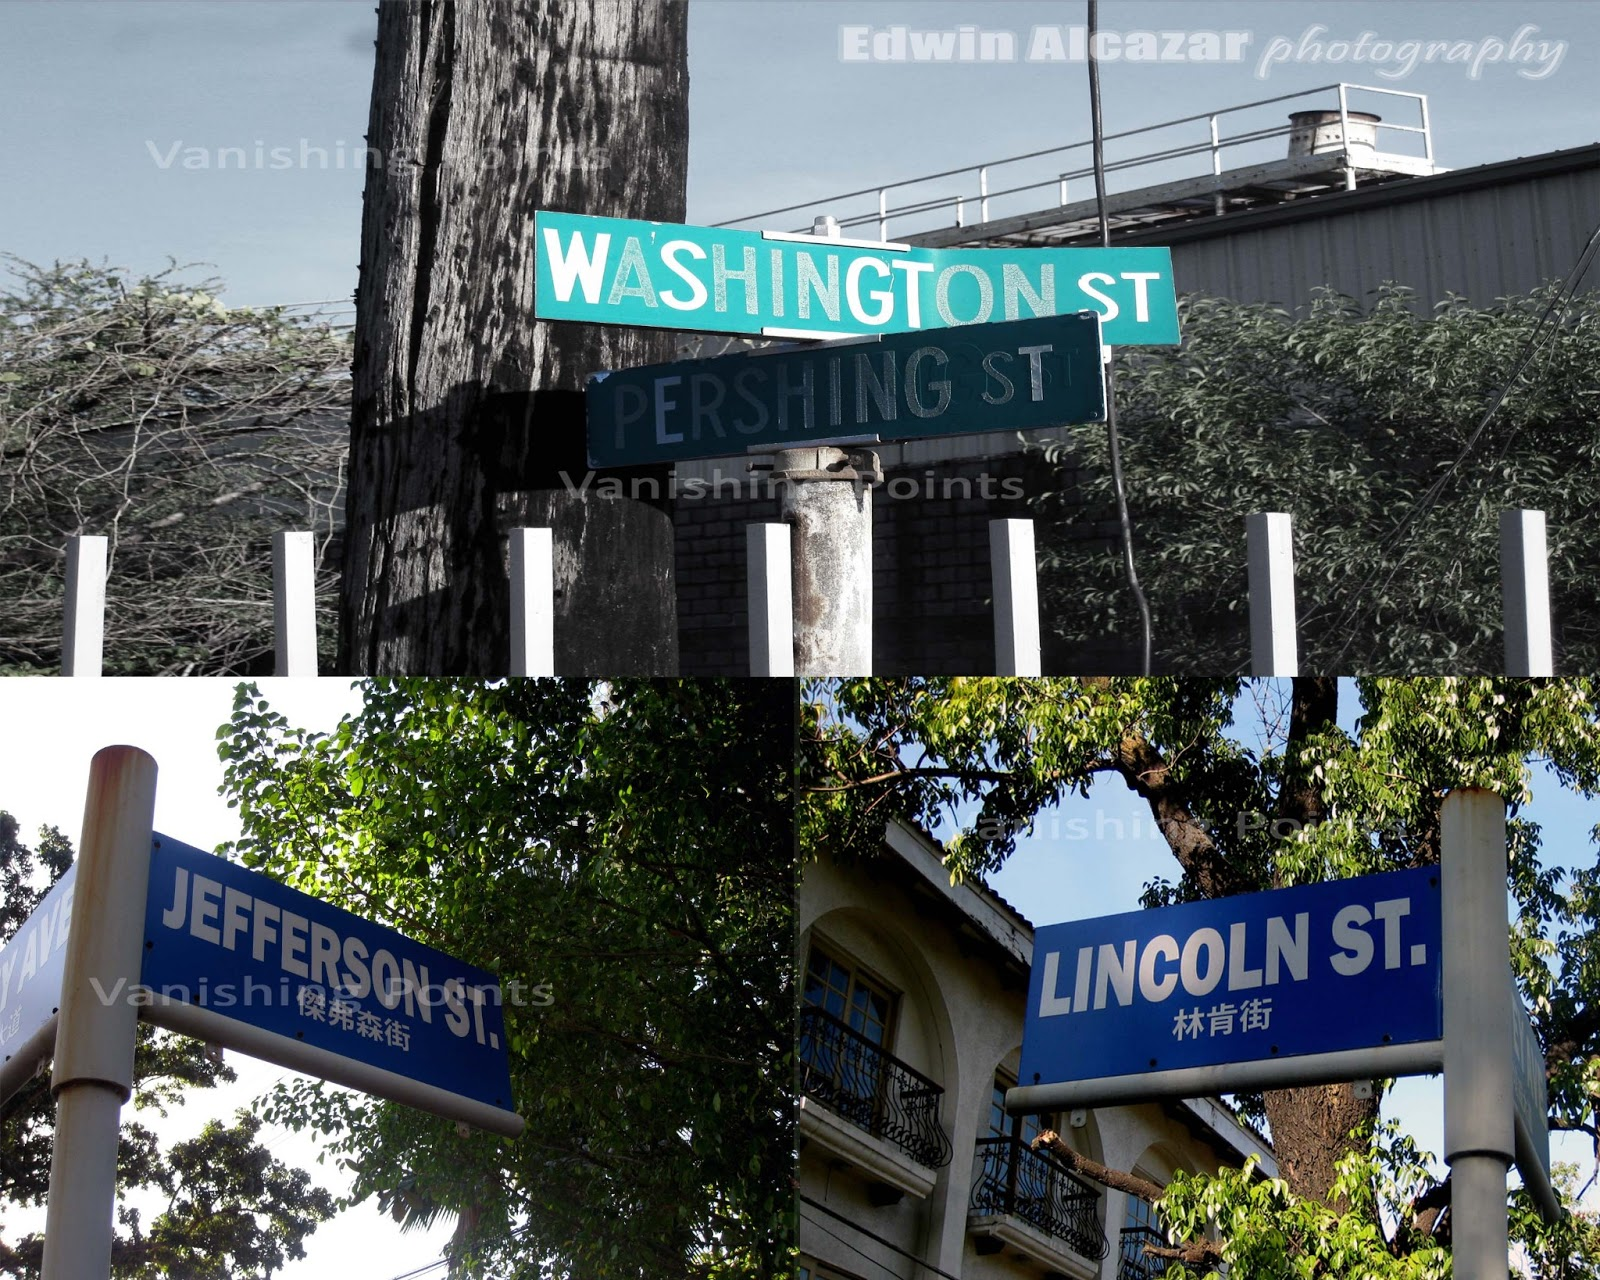 Street Markers. White on Green, original markers during US Navy days